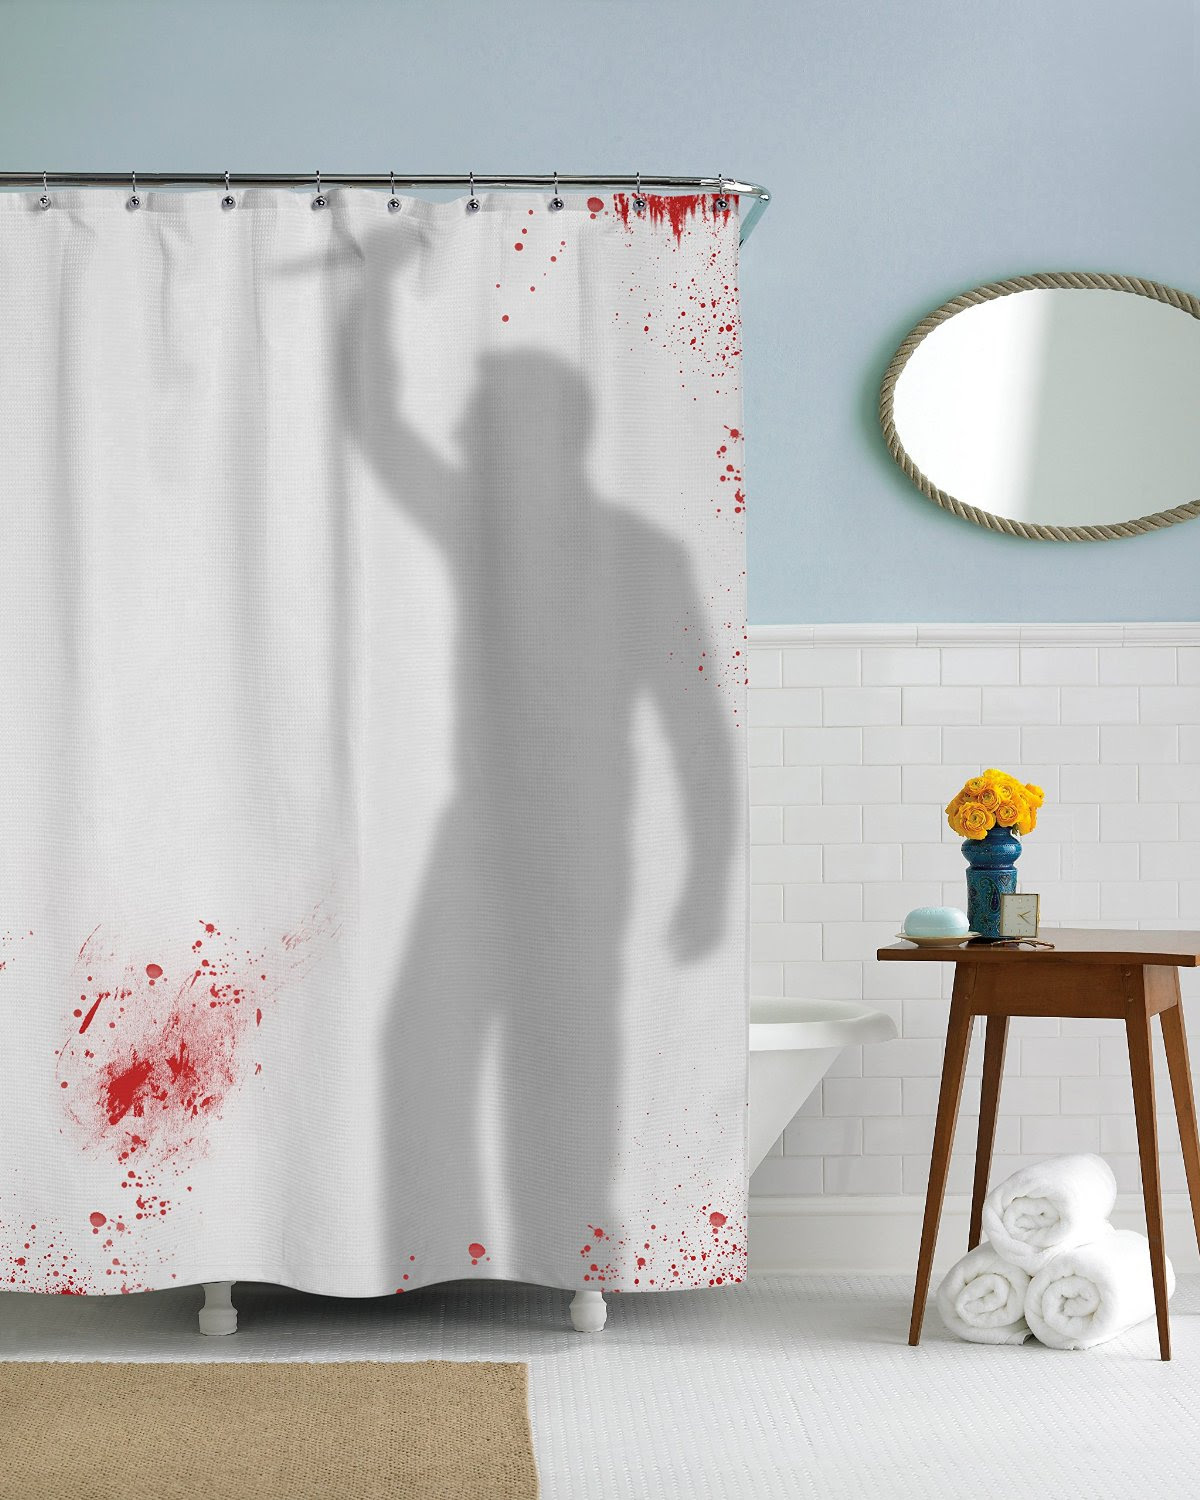 21 Horror Inspired Shower Curtains To Creep Up Your Home Riot Daily